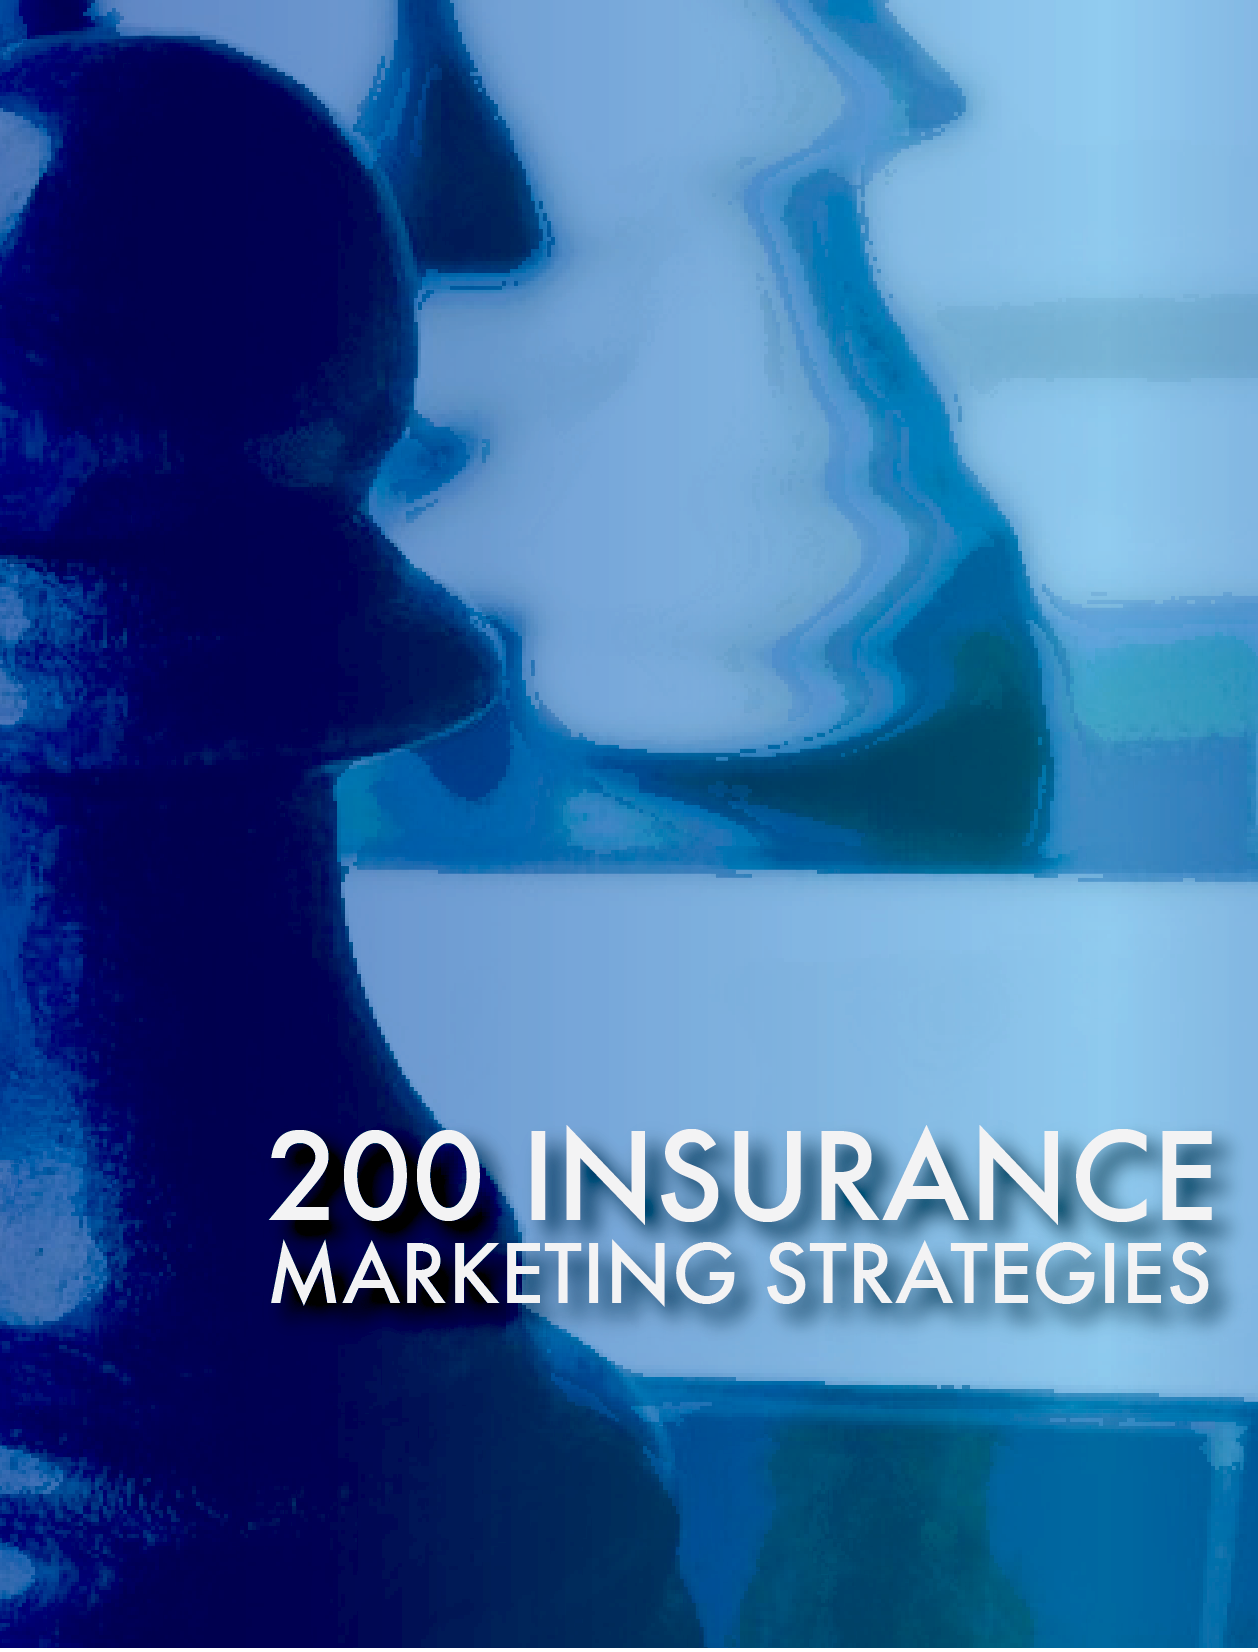 200 insurance marketing strategies